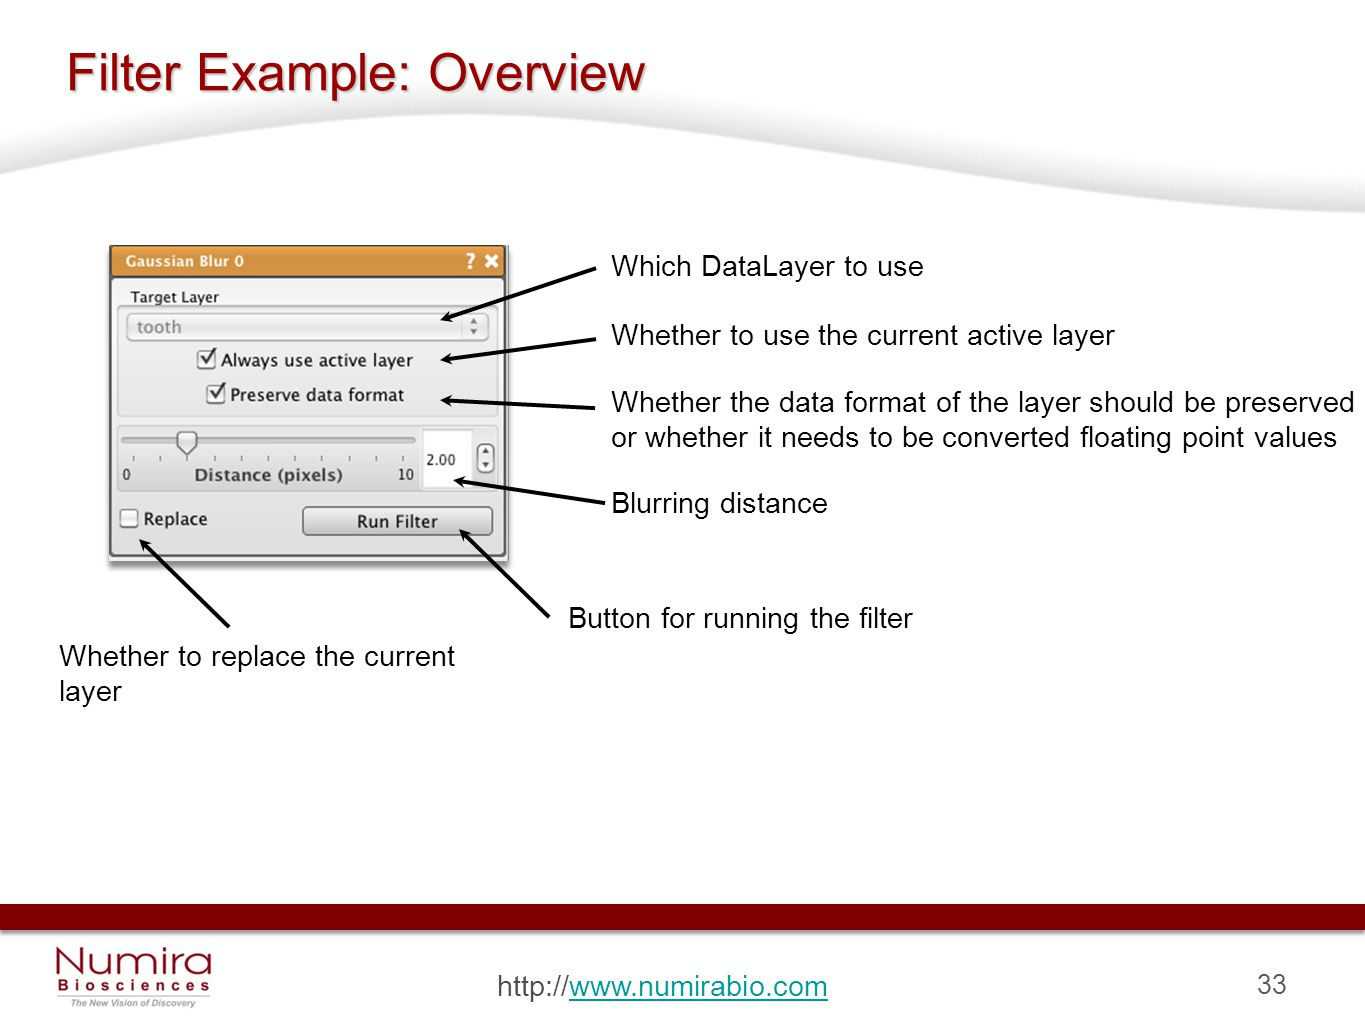 33 http://www.numirabio.comwww.numirabio.com Filter Example: Overview Which DataLayer to use Whether to use the current active layer Whether the data format of the layer should be preserved or whether it needs to be converted floating point values Blurring distance Whether to replace the current layer Button for running the filter